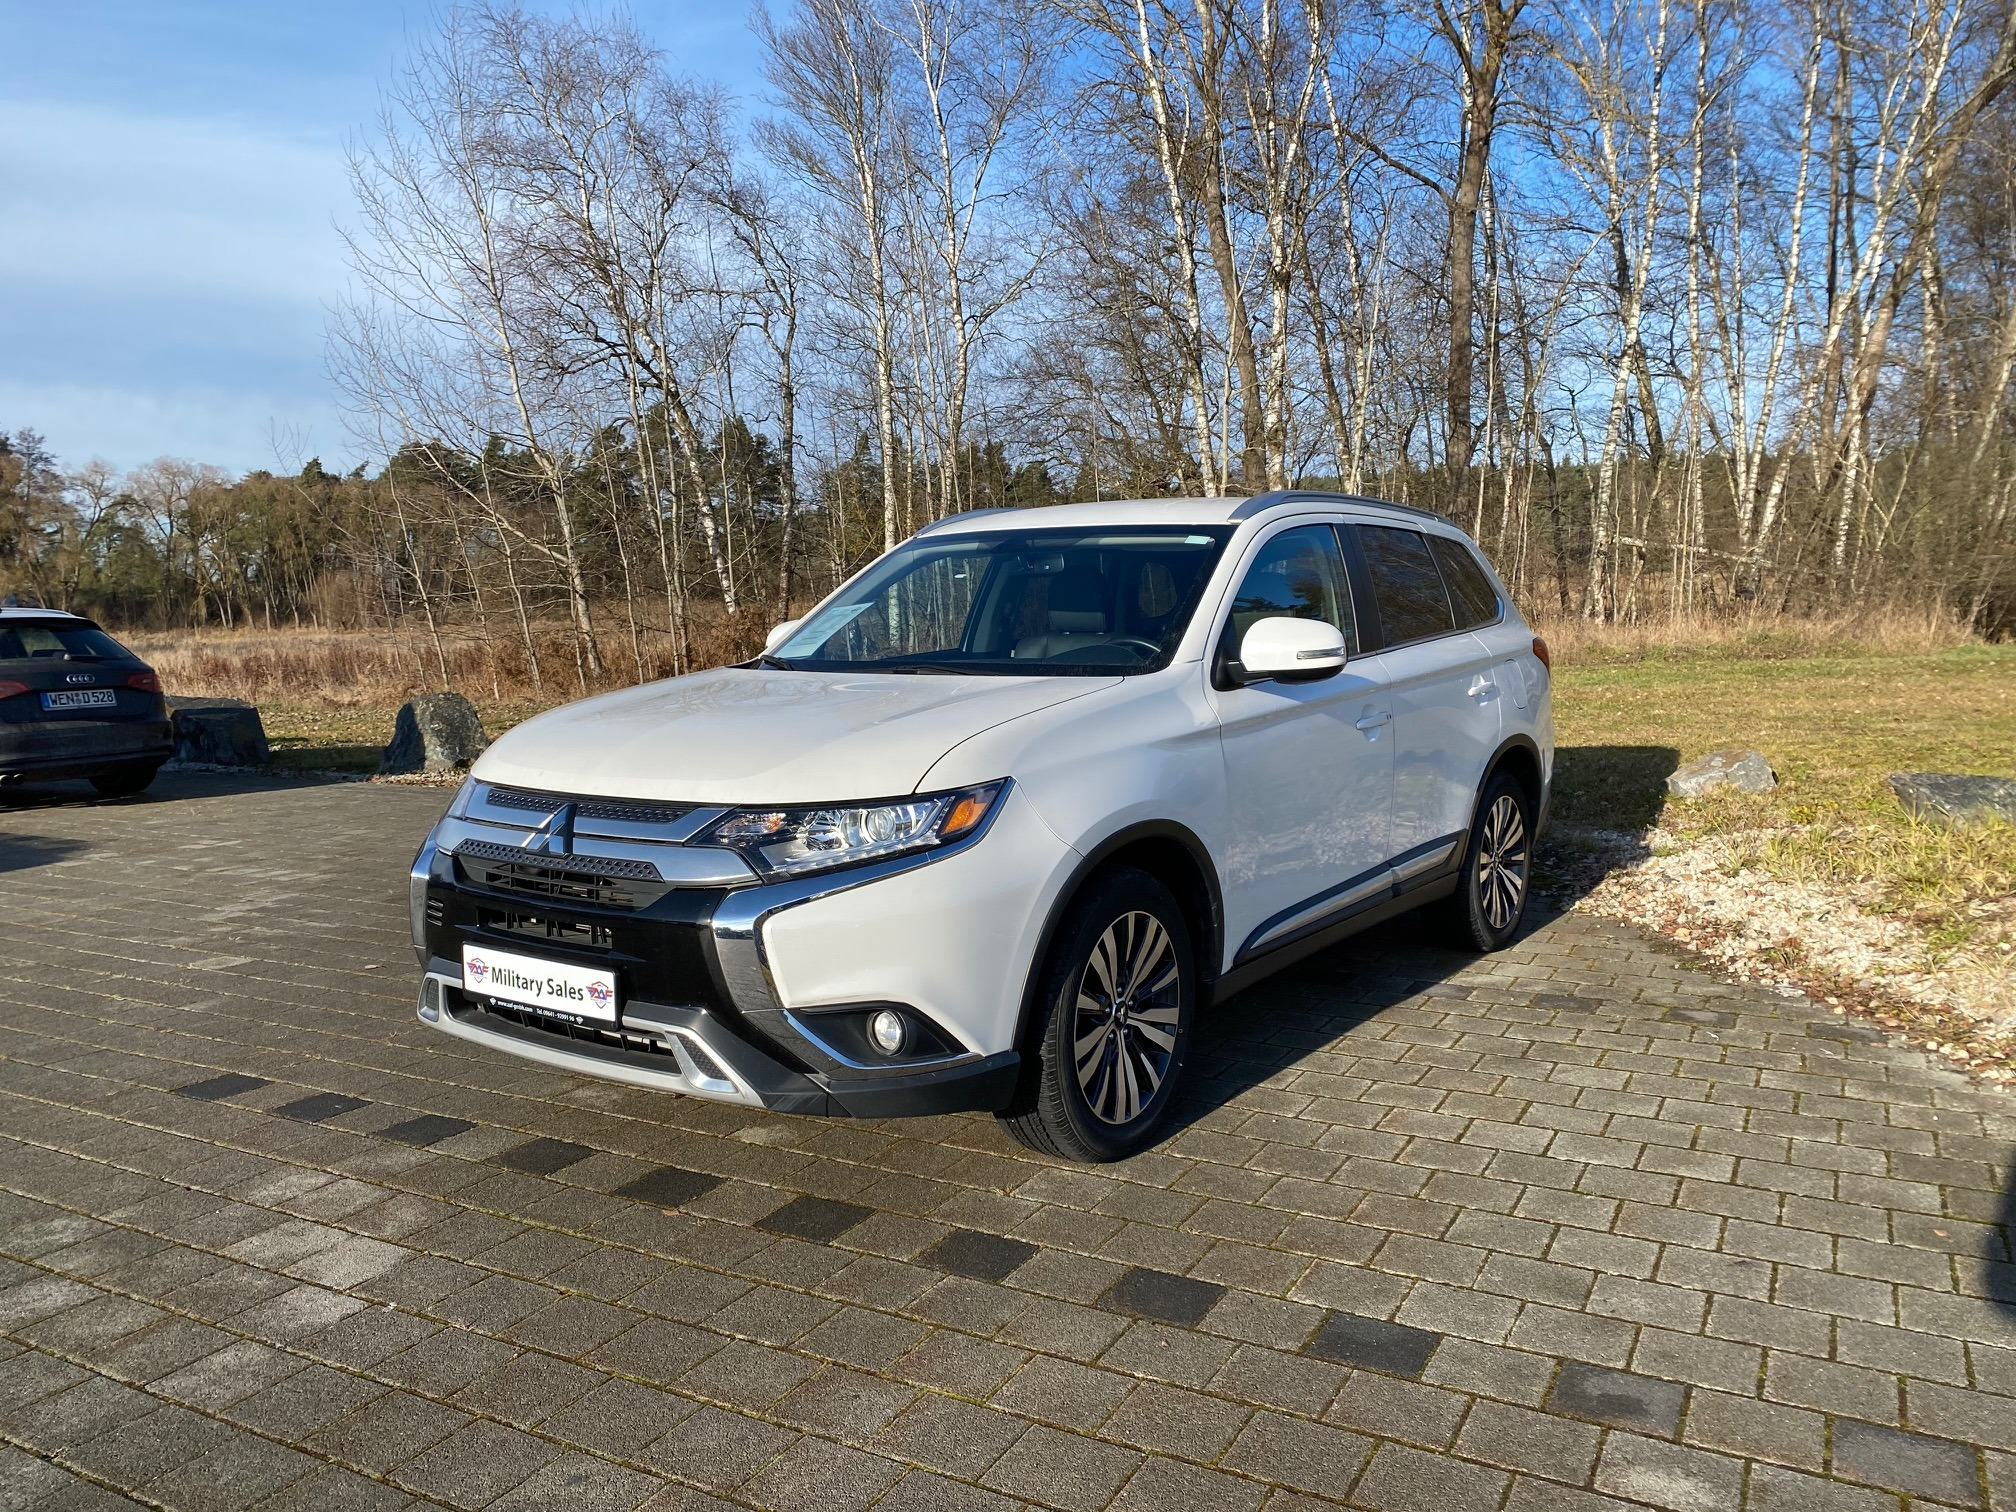 2019 Mitsubishi Outlander Utility SEL</br>as low as </br>$169 per paycheck  Copy